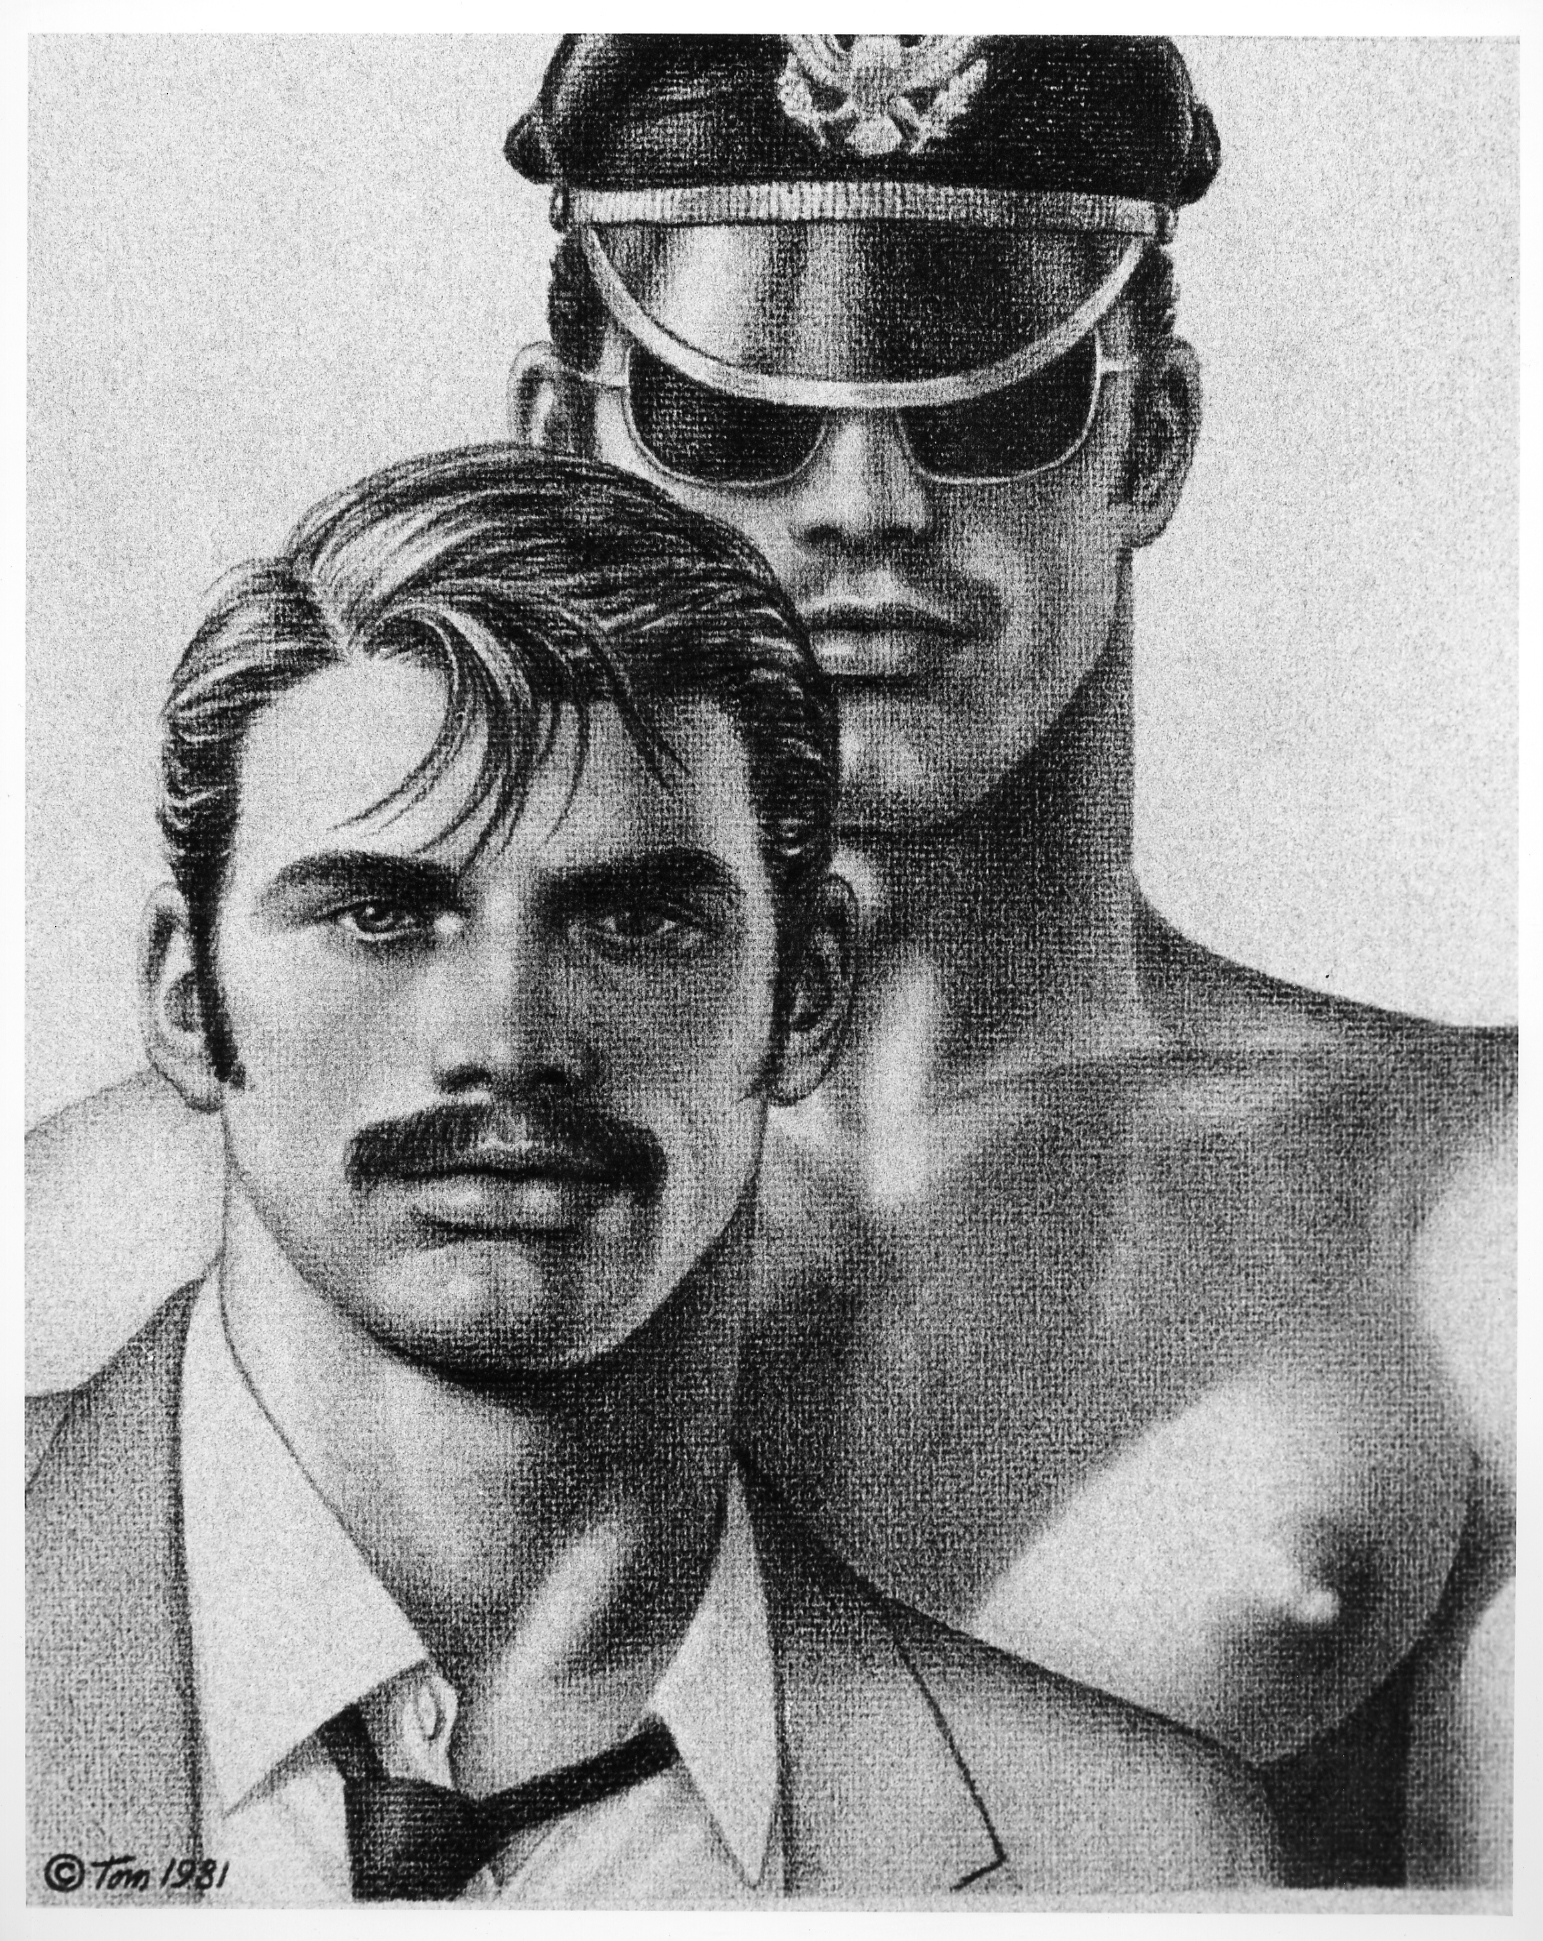 Tom Ford's Patchouli Absolu - Serving up 'Tom of Finland' Realness